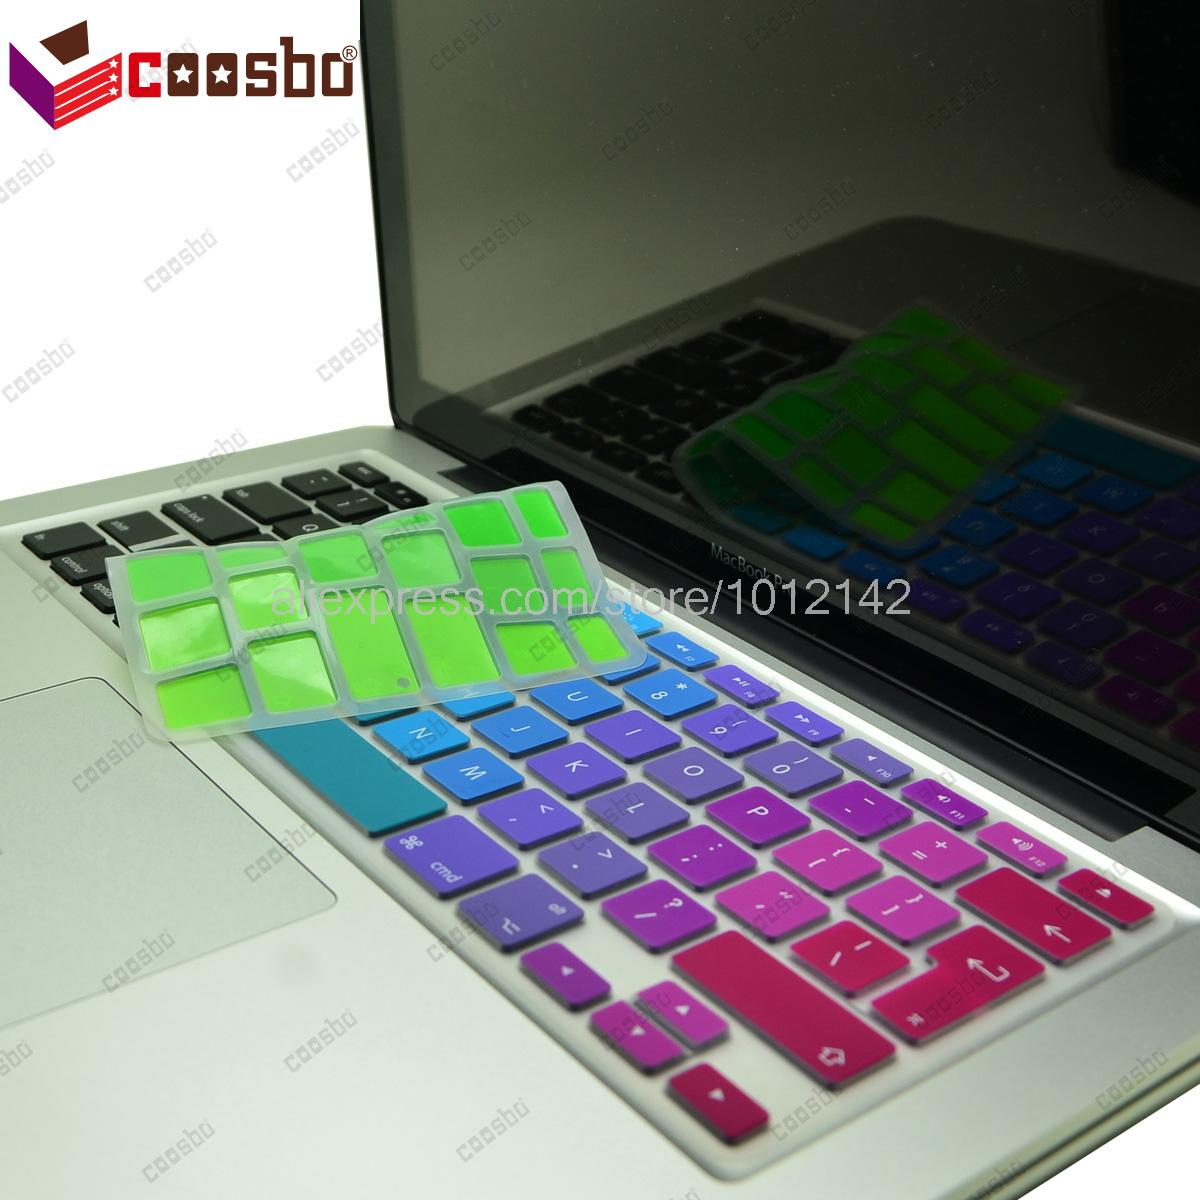 50 pcs prix de gros colorful EU / UK keyboard Cover Skin pour Apple Mac MacBook air pro retina 11 13 15 17 Protecter Film cadeau